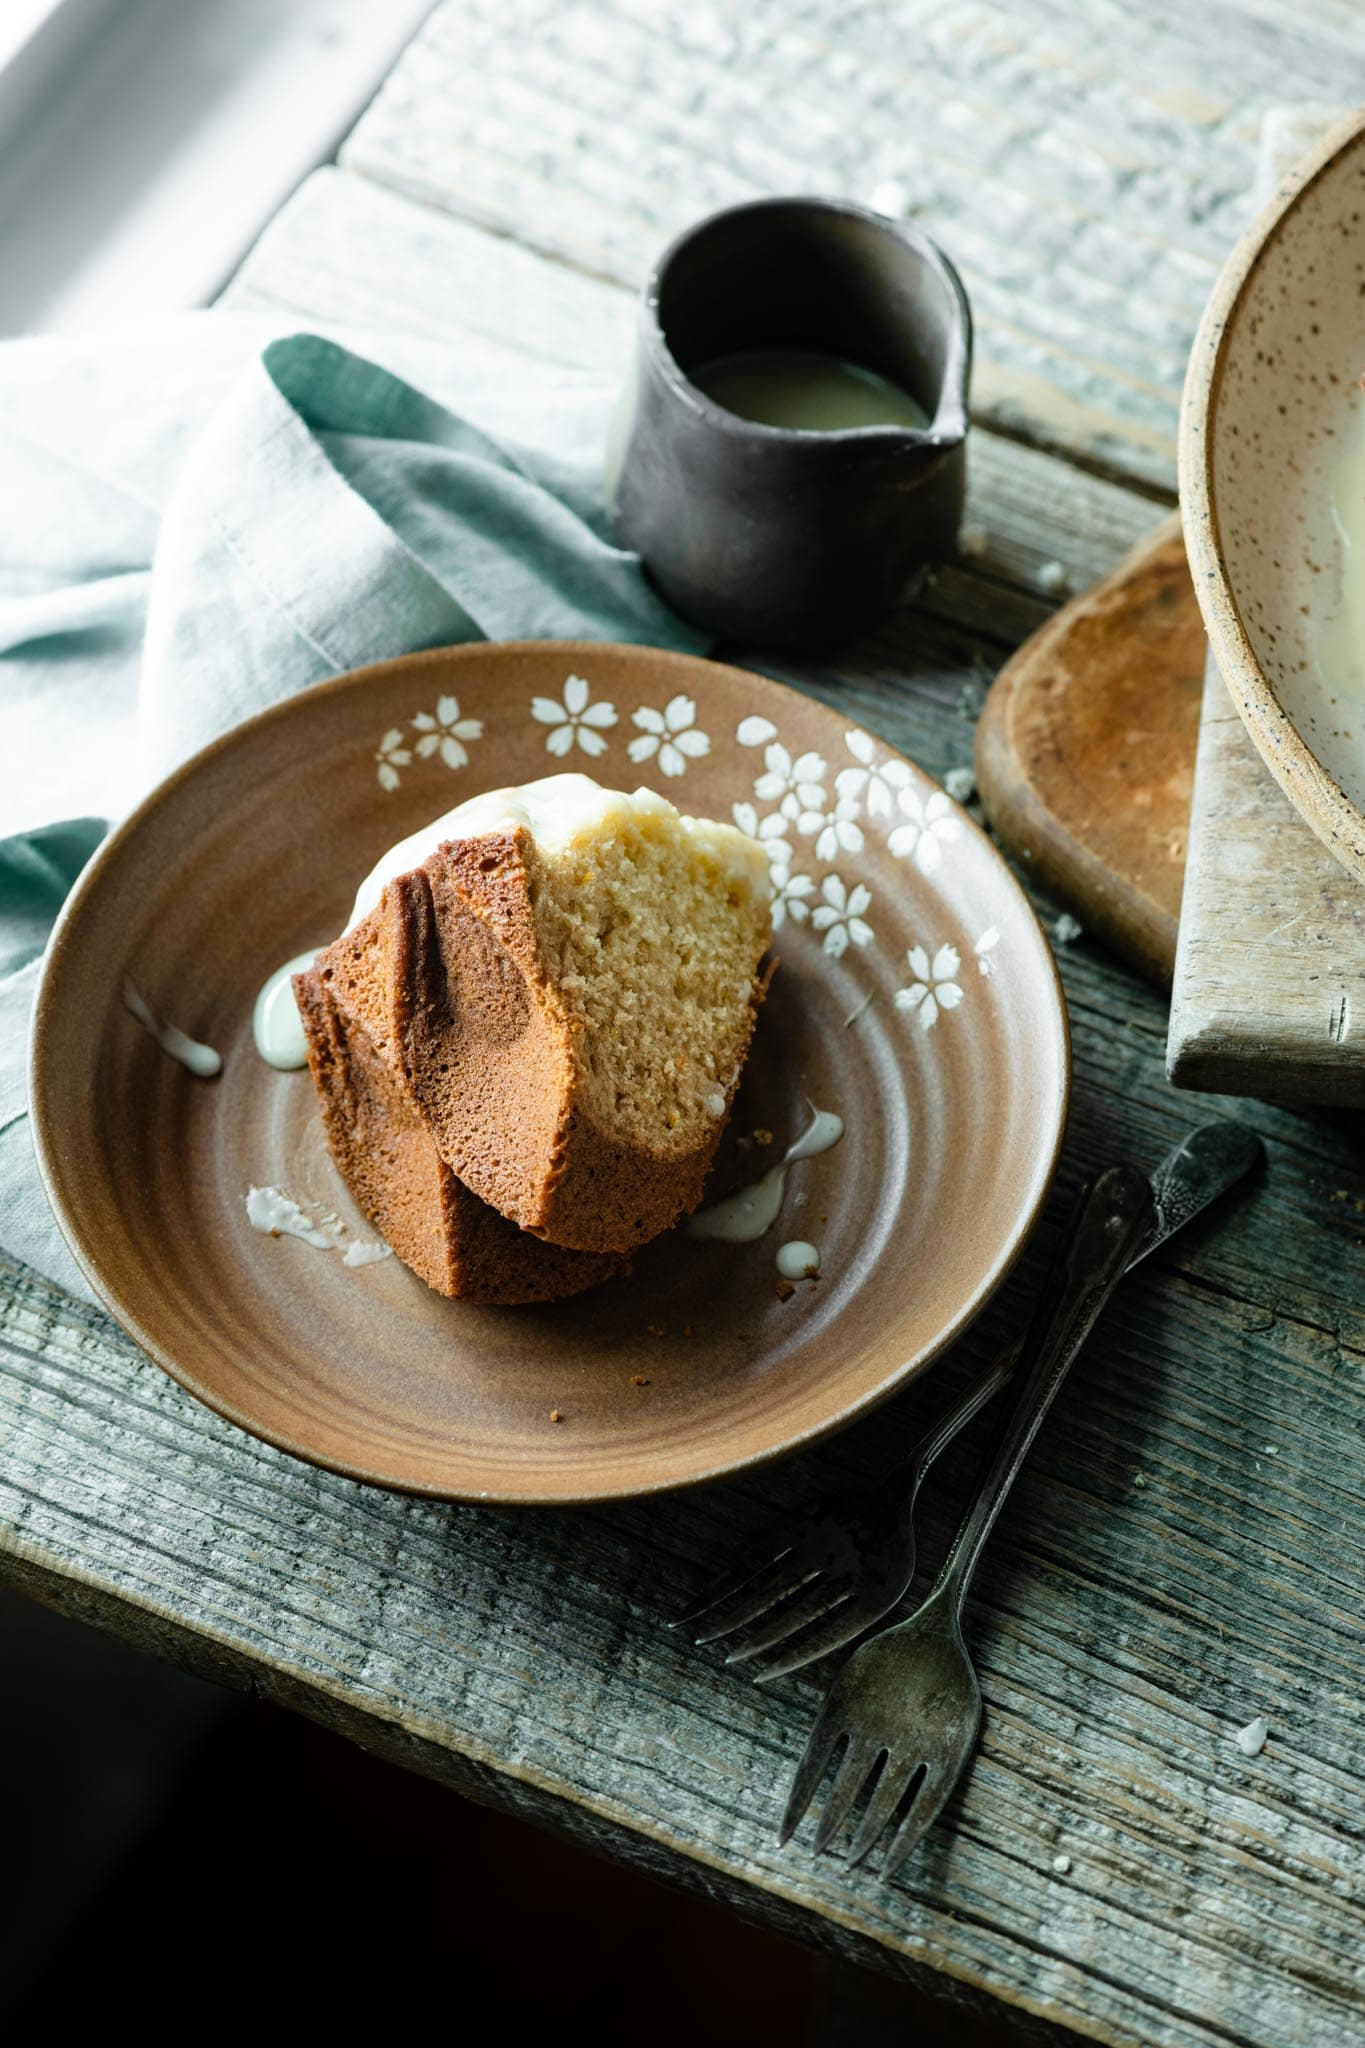 Slice of orange blossom honey cake.